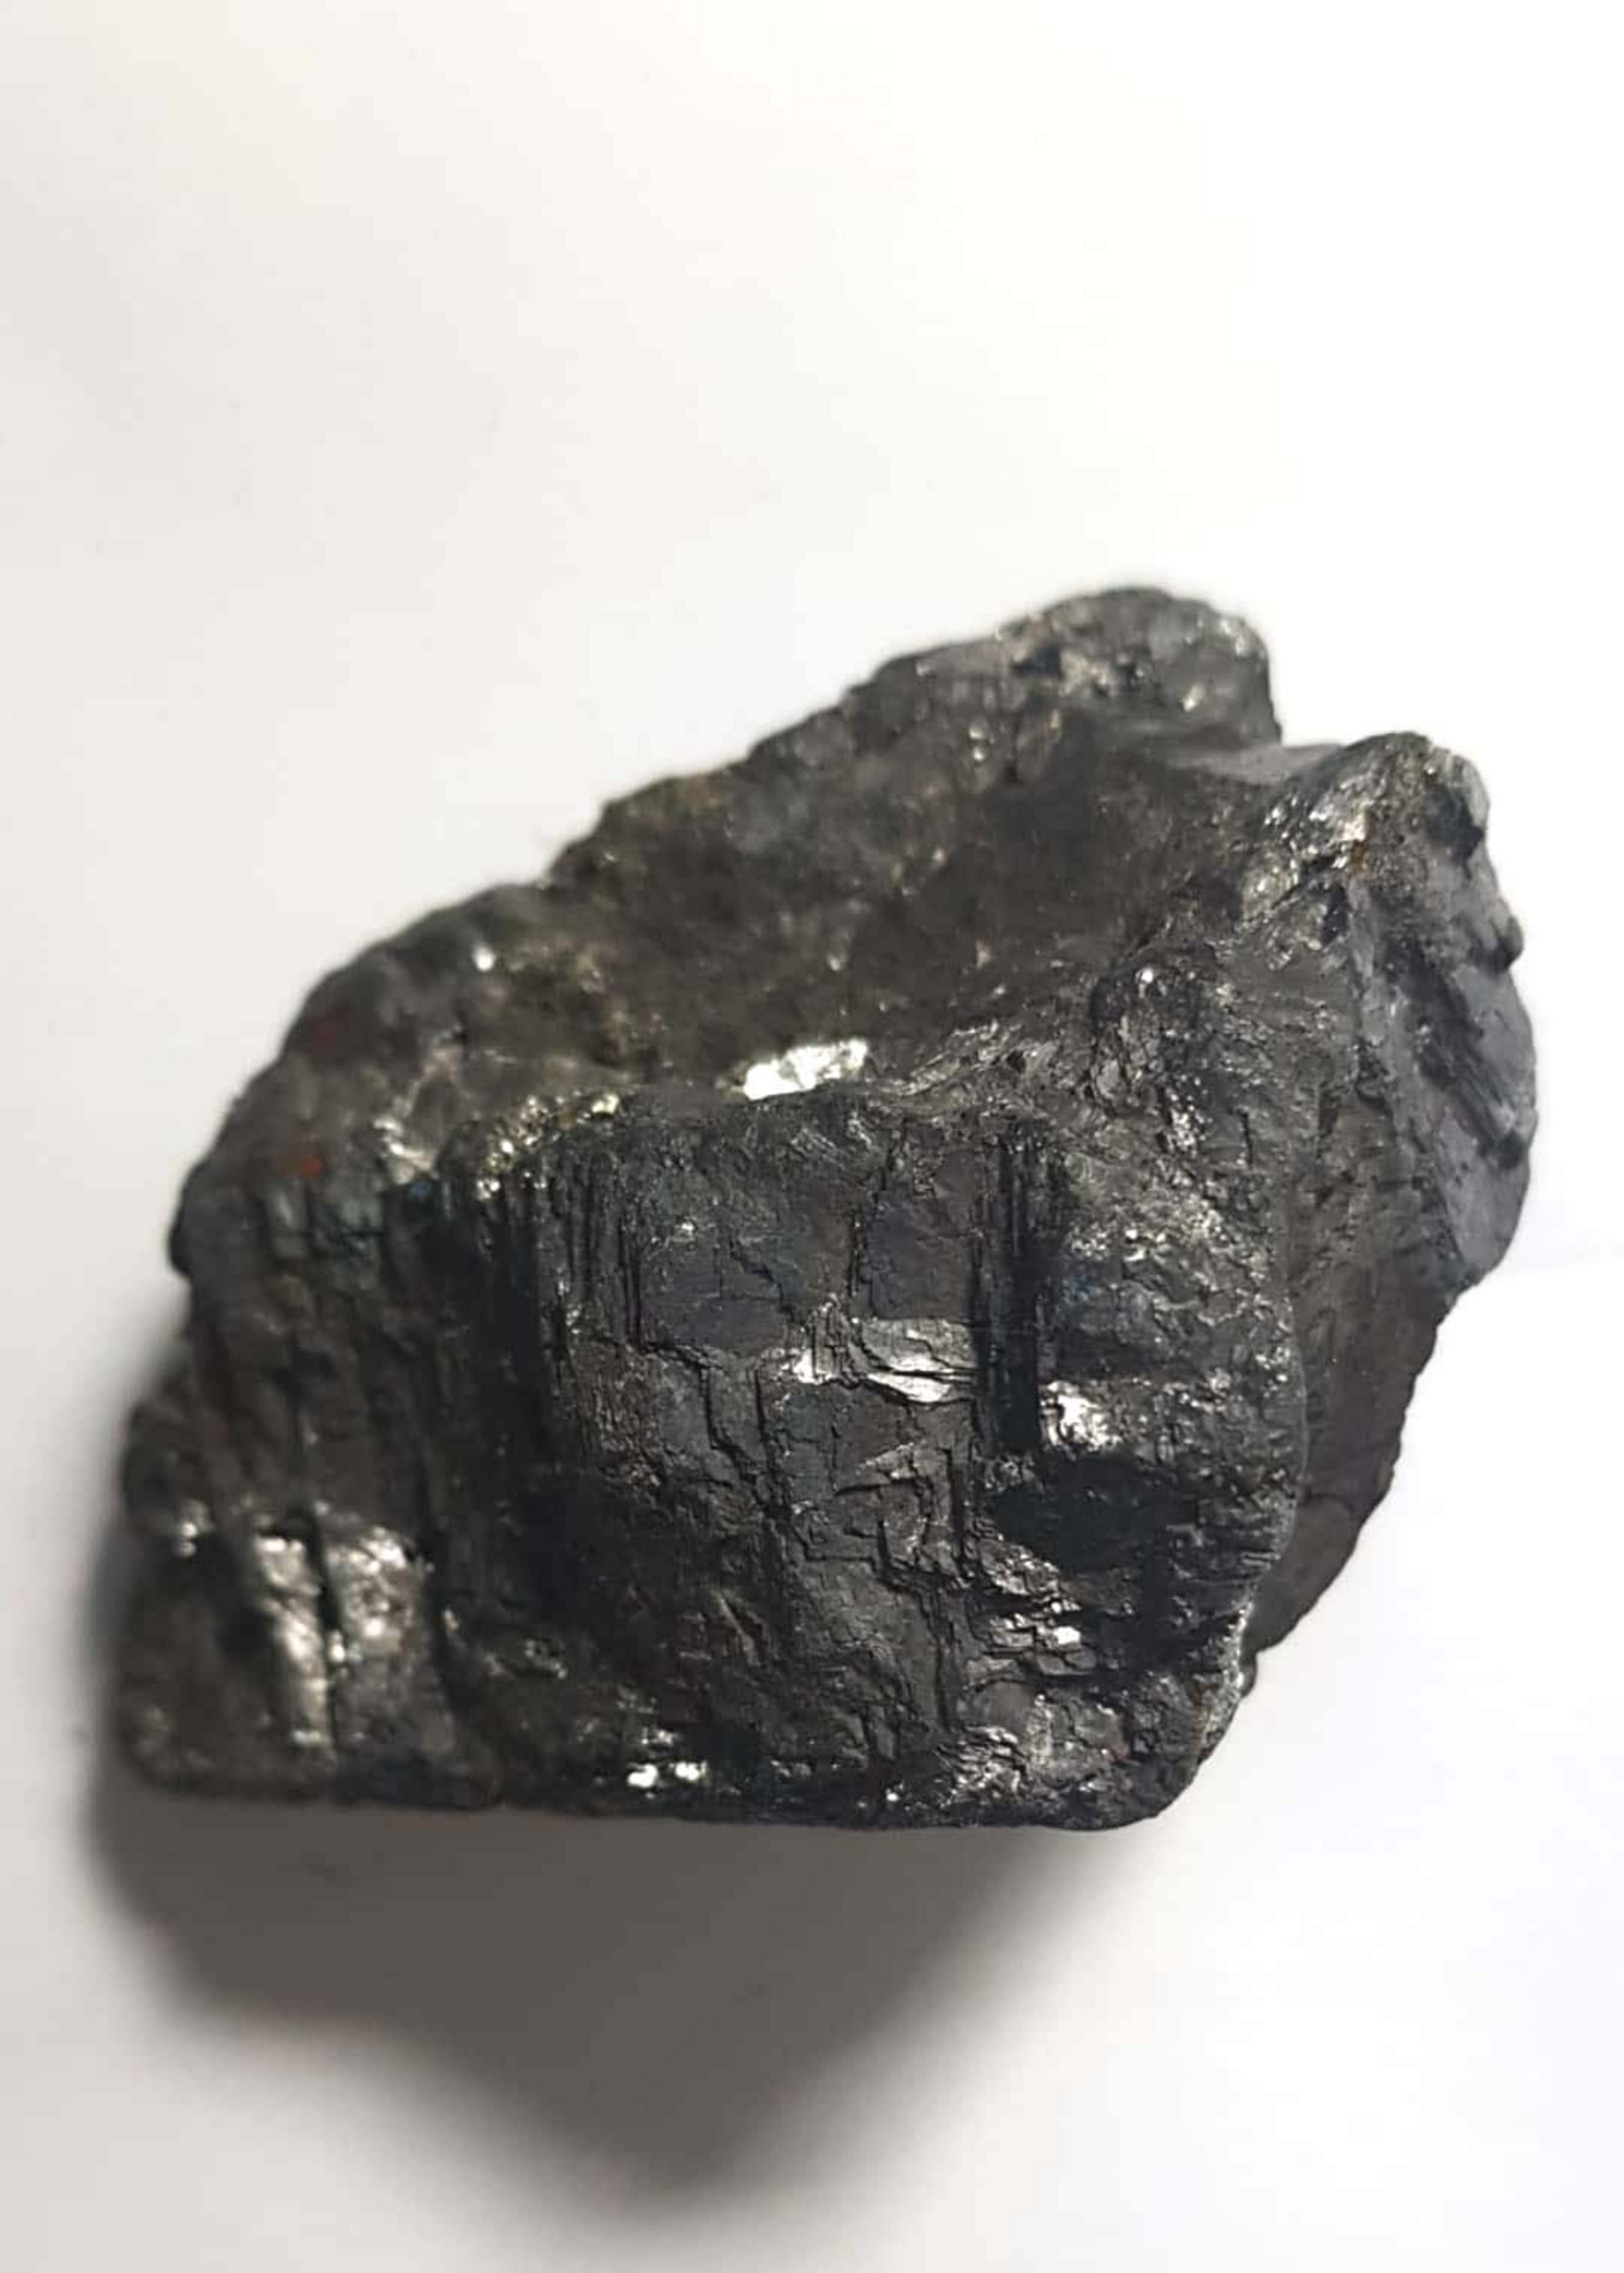 Anthracite from Dawdon Colliery